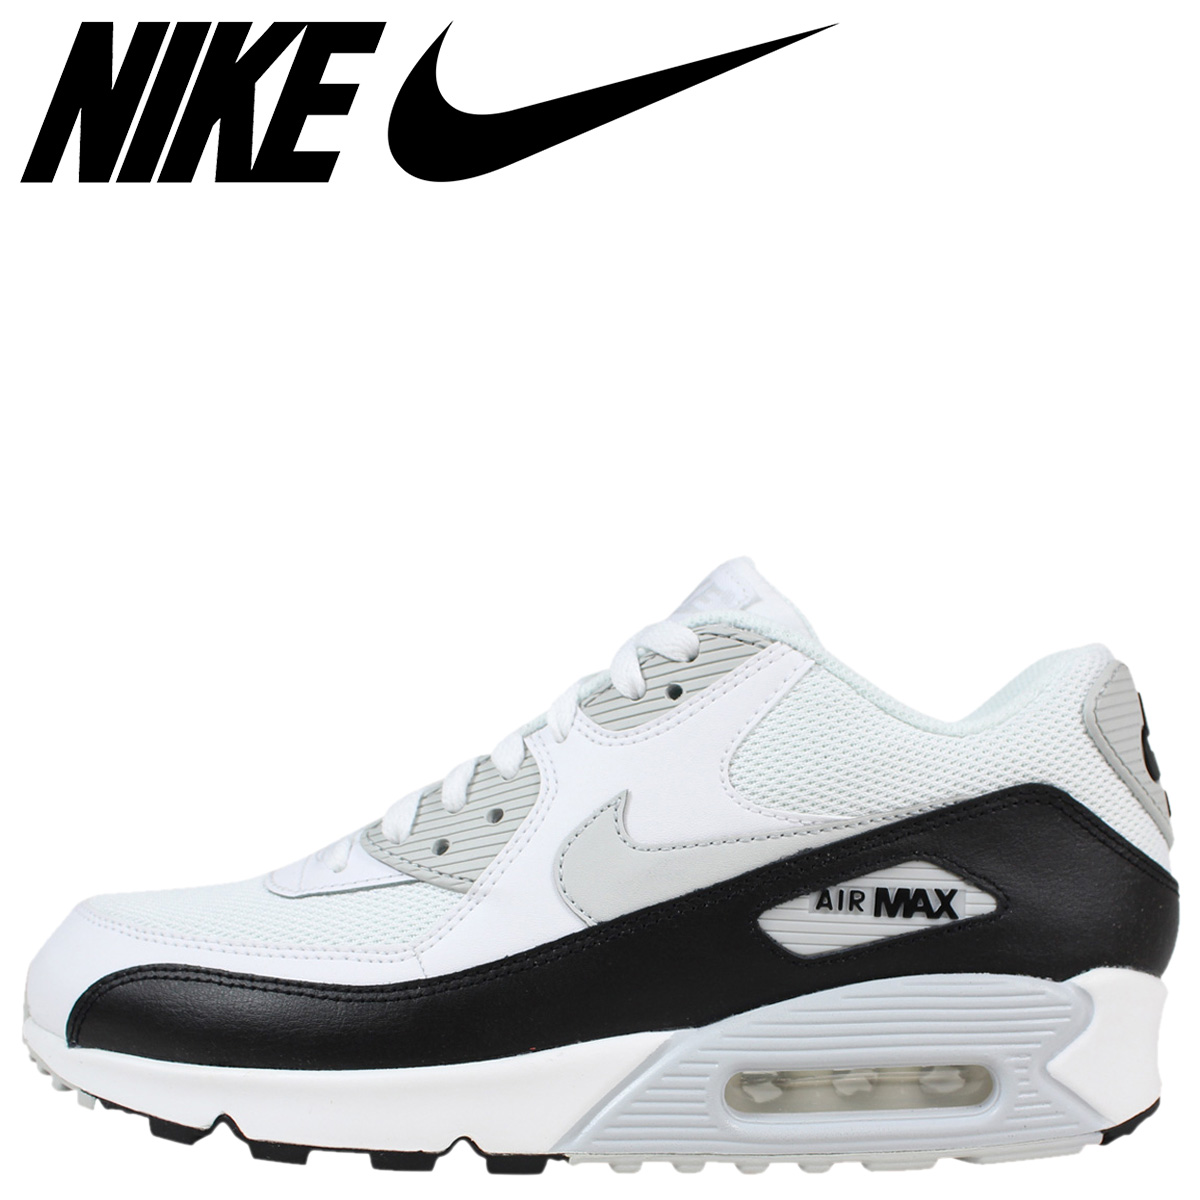 nike air max 90 online shop greece